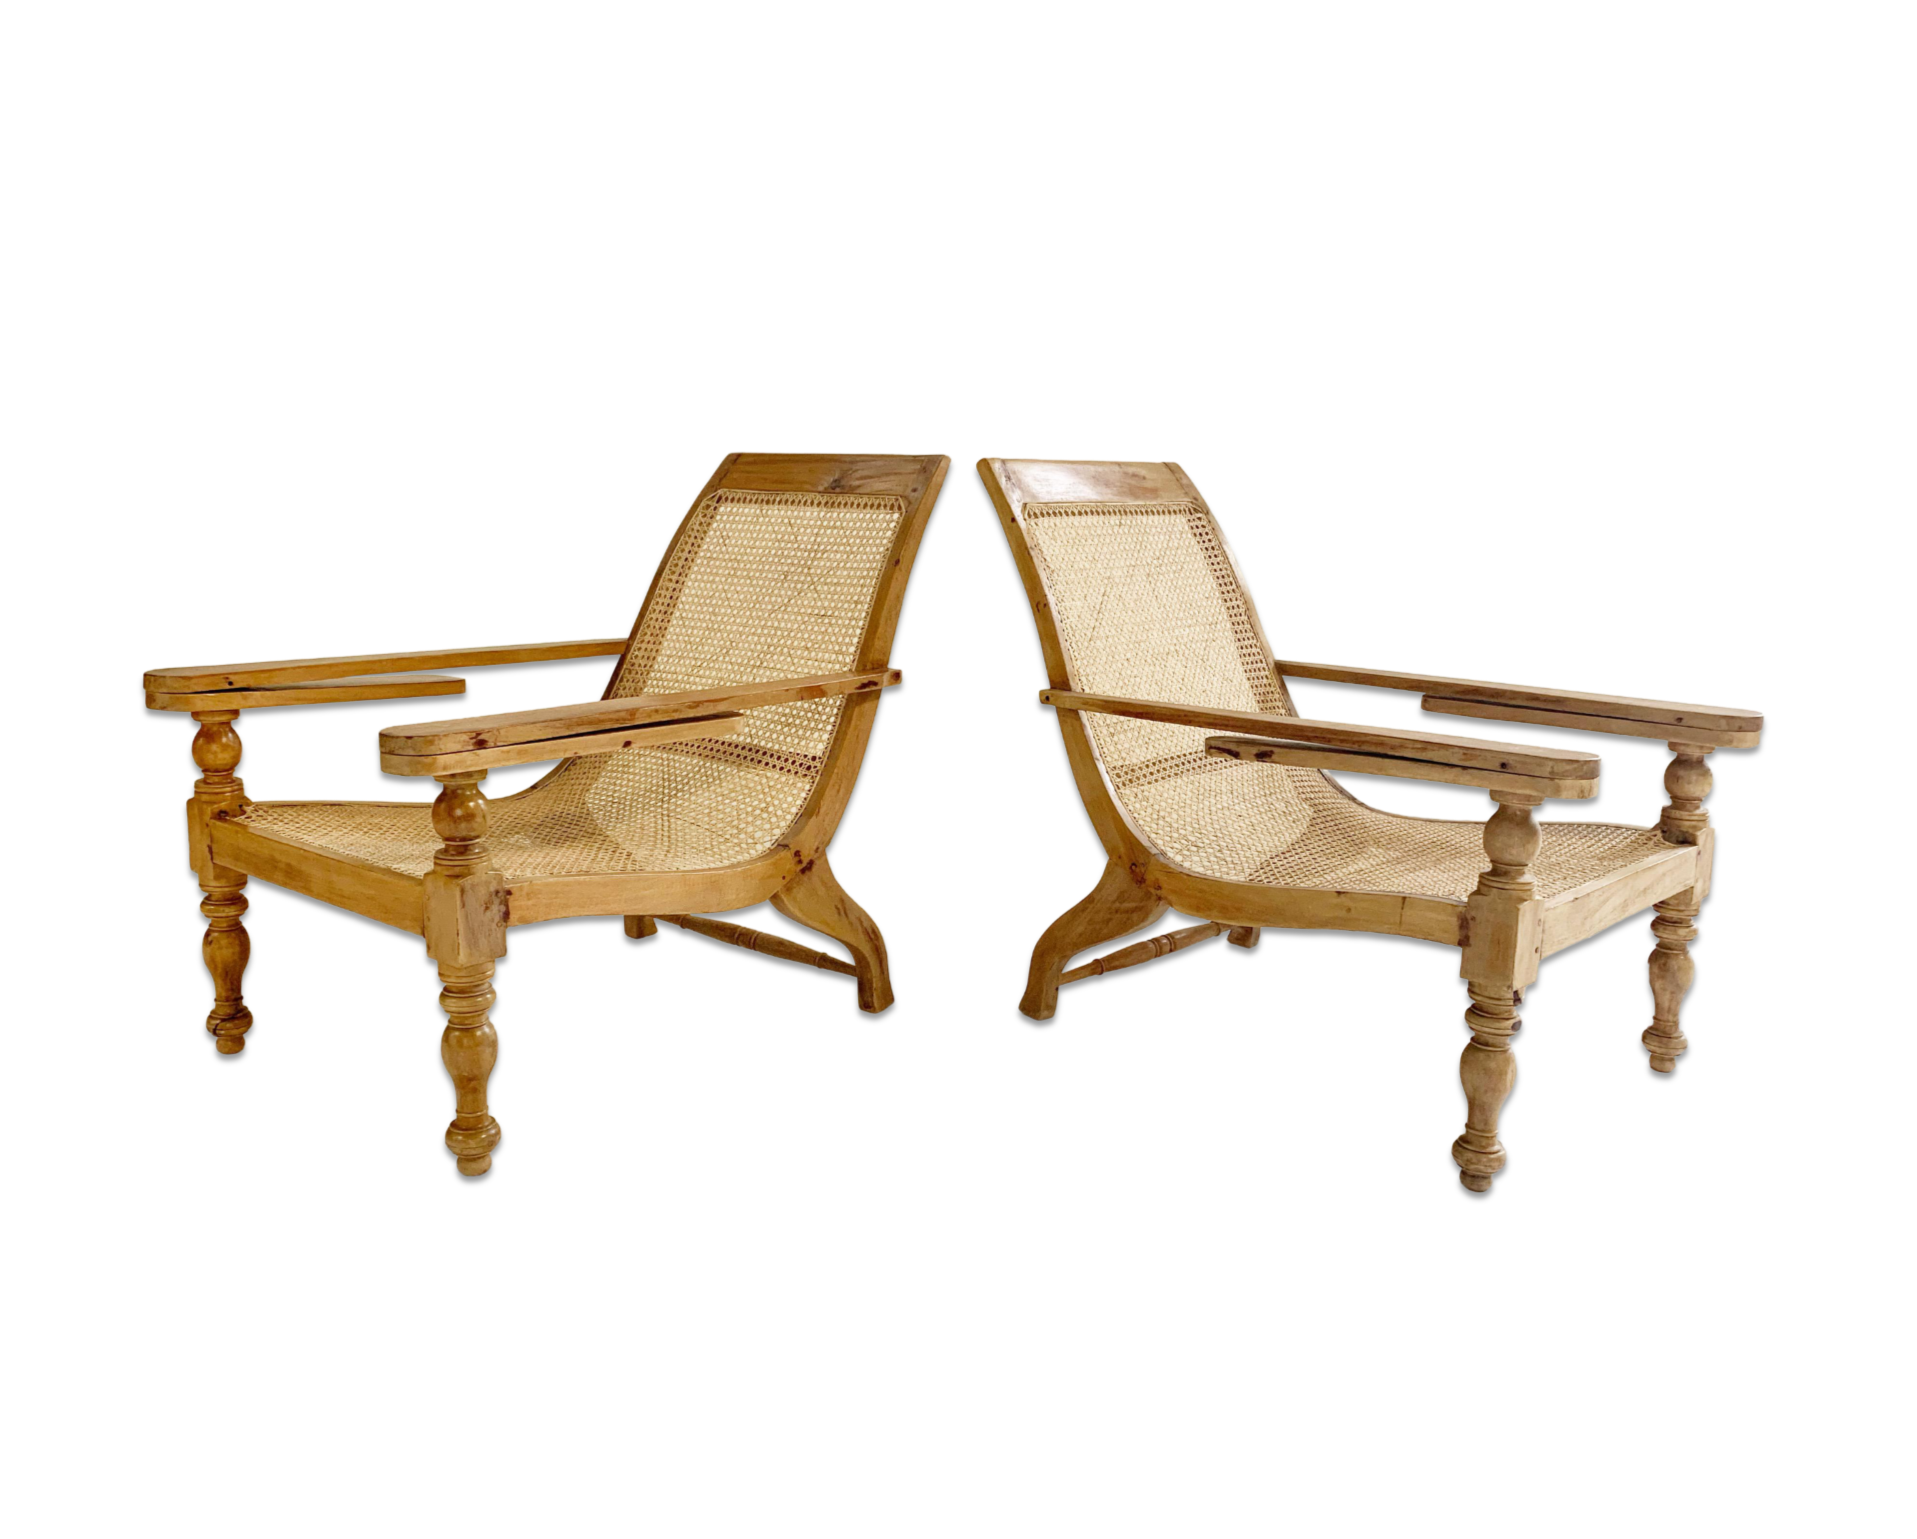 British Colonial Plantation Chairs, pair